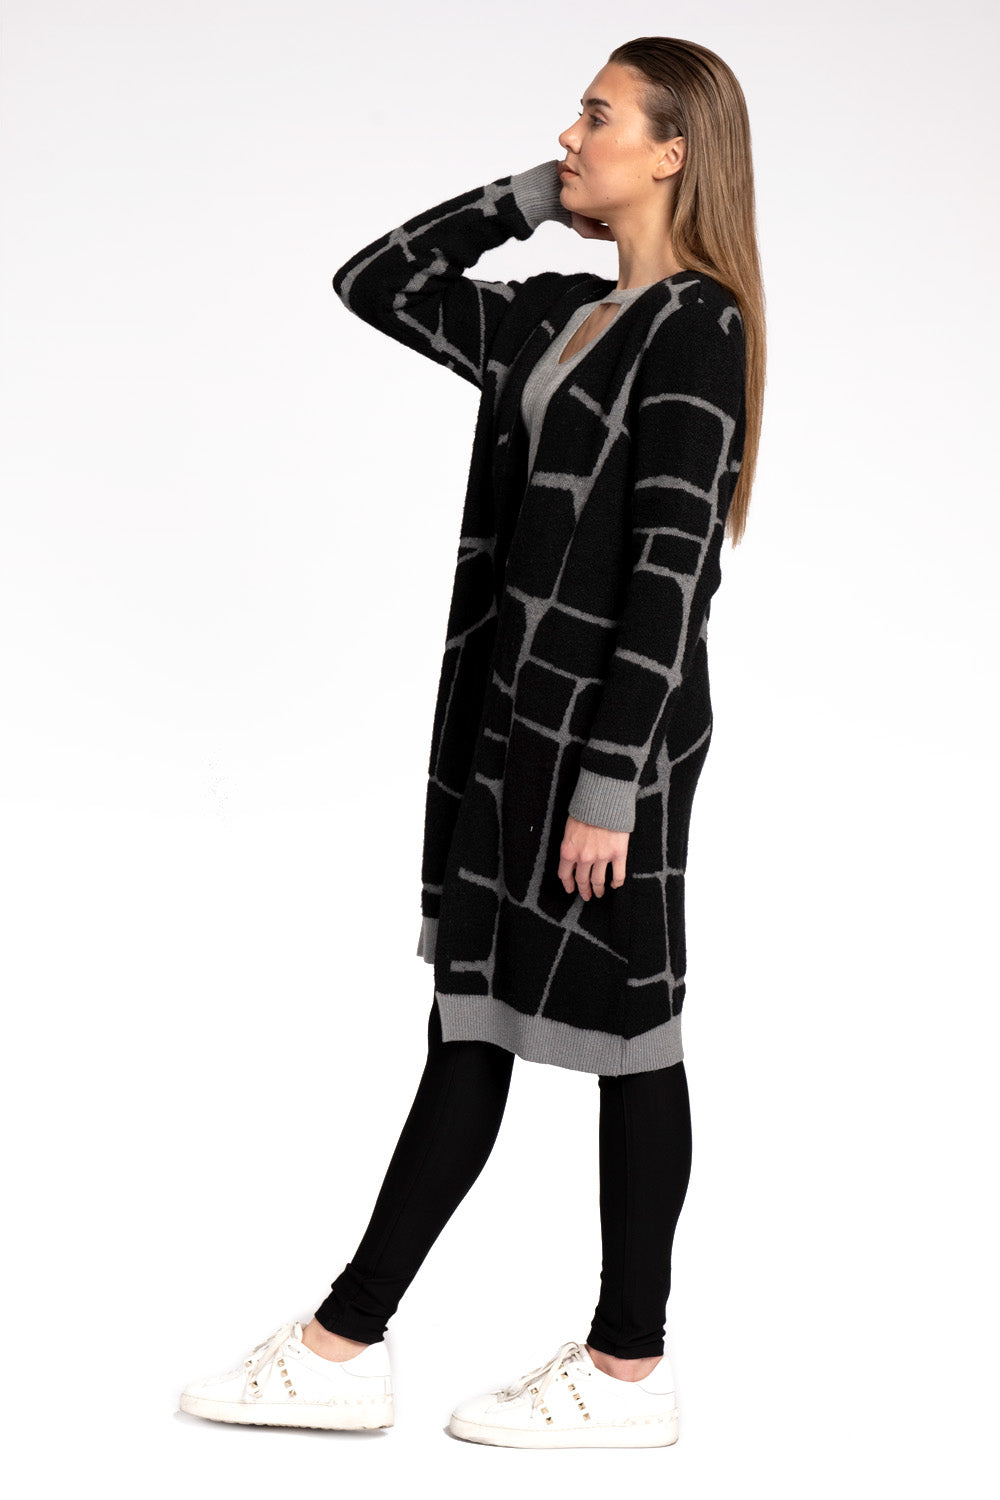 Milla Pop Art Black-Grey Cardigan